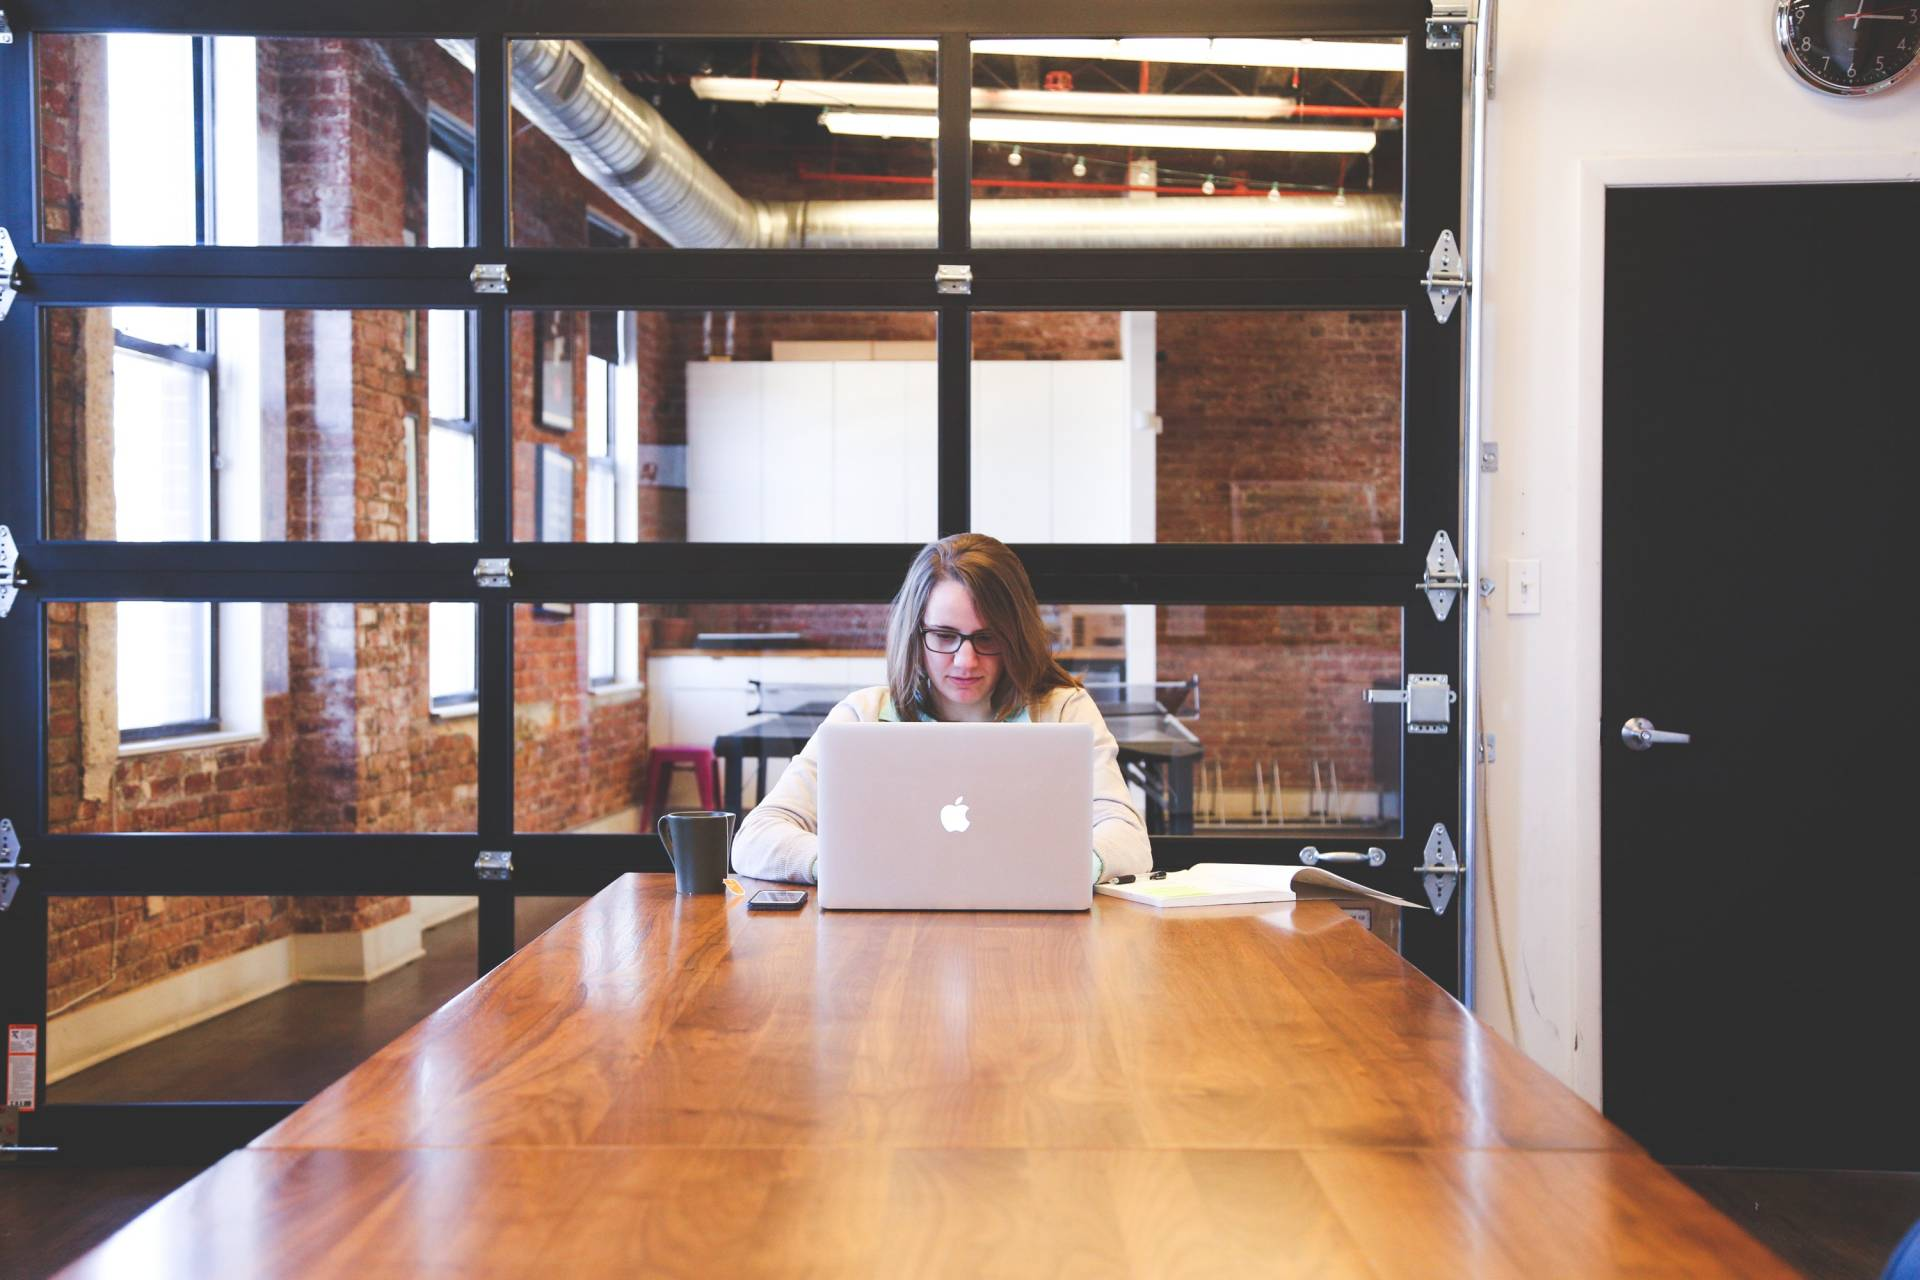 7 Things to Consider Before Setting Up Your Own Business